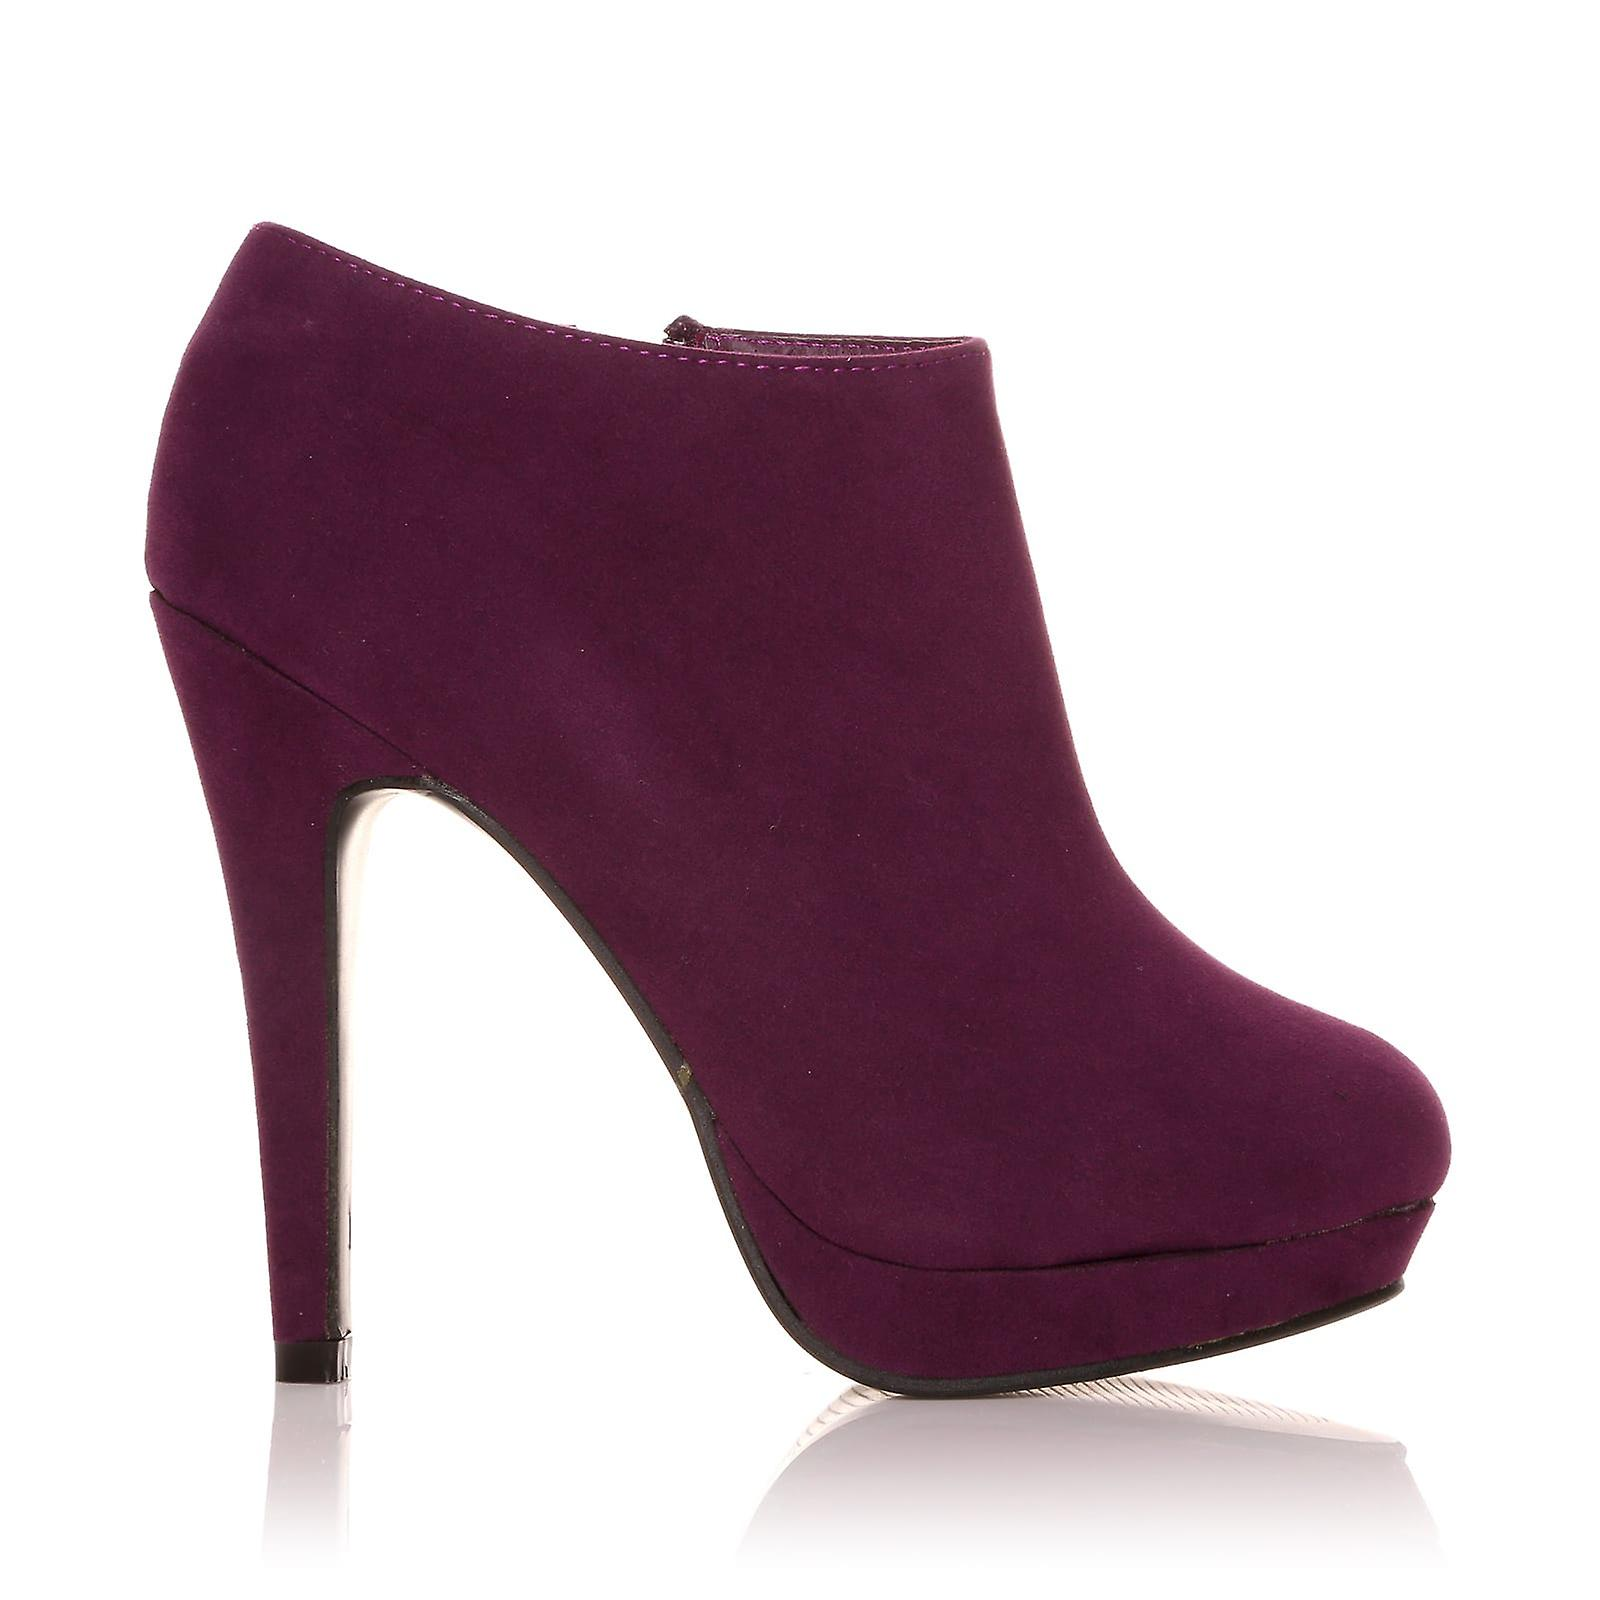 H20 Purple Faux Suede Ankle Stilleto Very High Heel Ankle Suede Shoe Boots cc486f